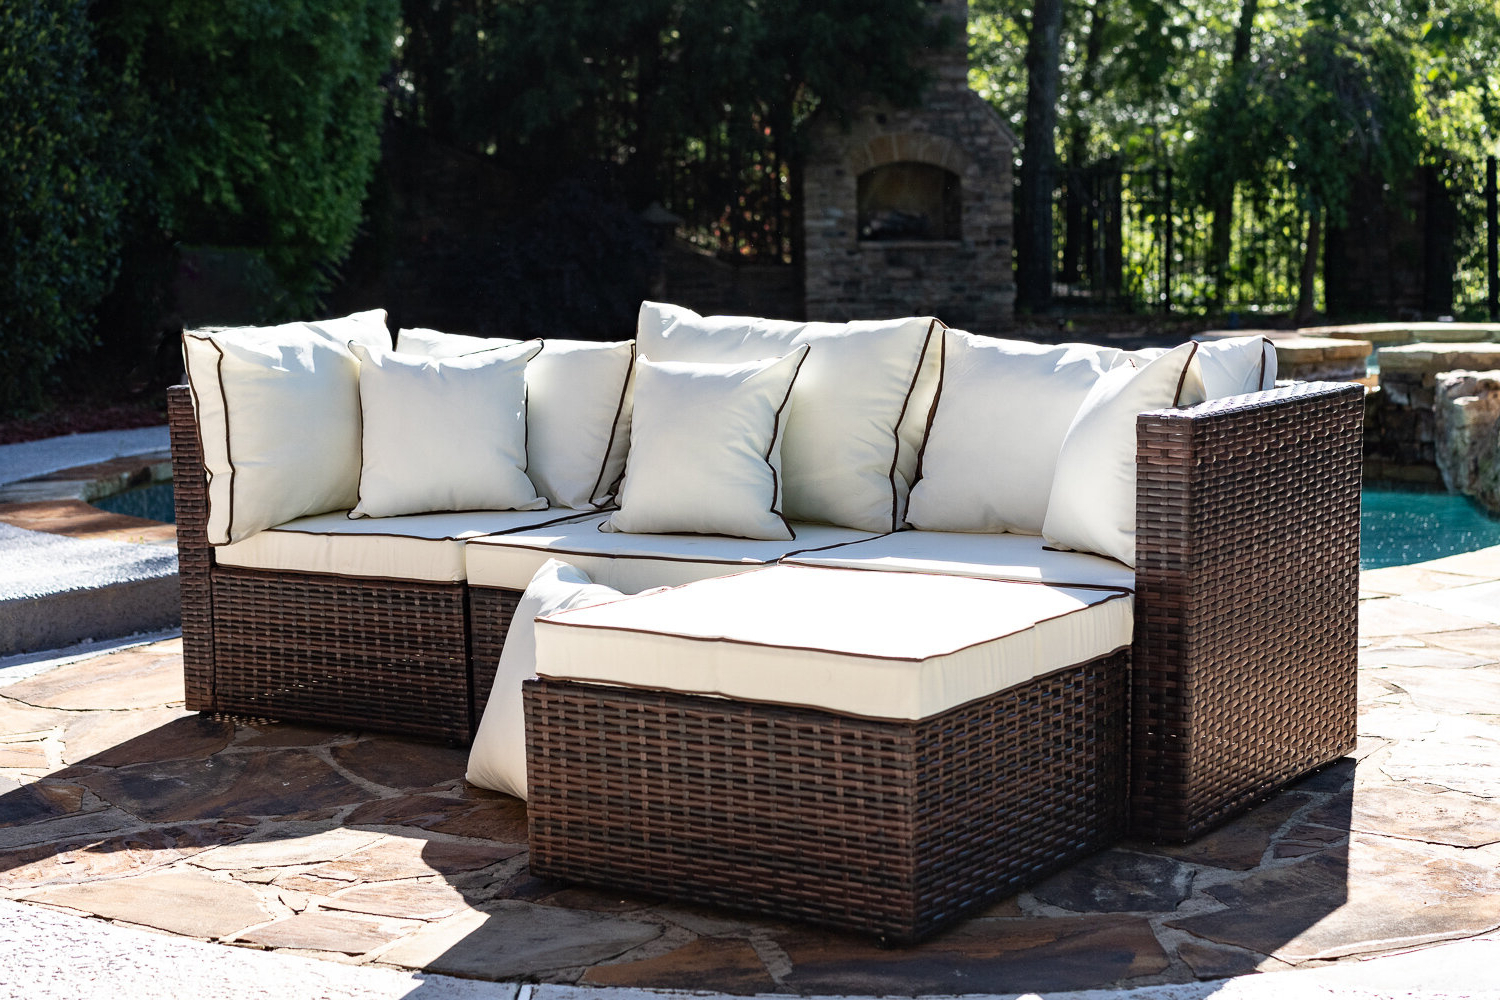 2019 Purington Circular Patio Sectionals With Cushions In Burruss Patio Sectional With Cushions (Gallery 5 of 20)